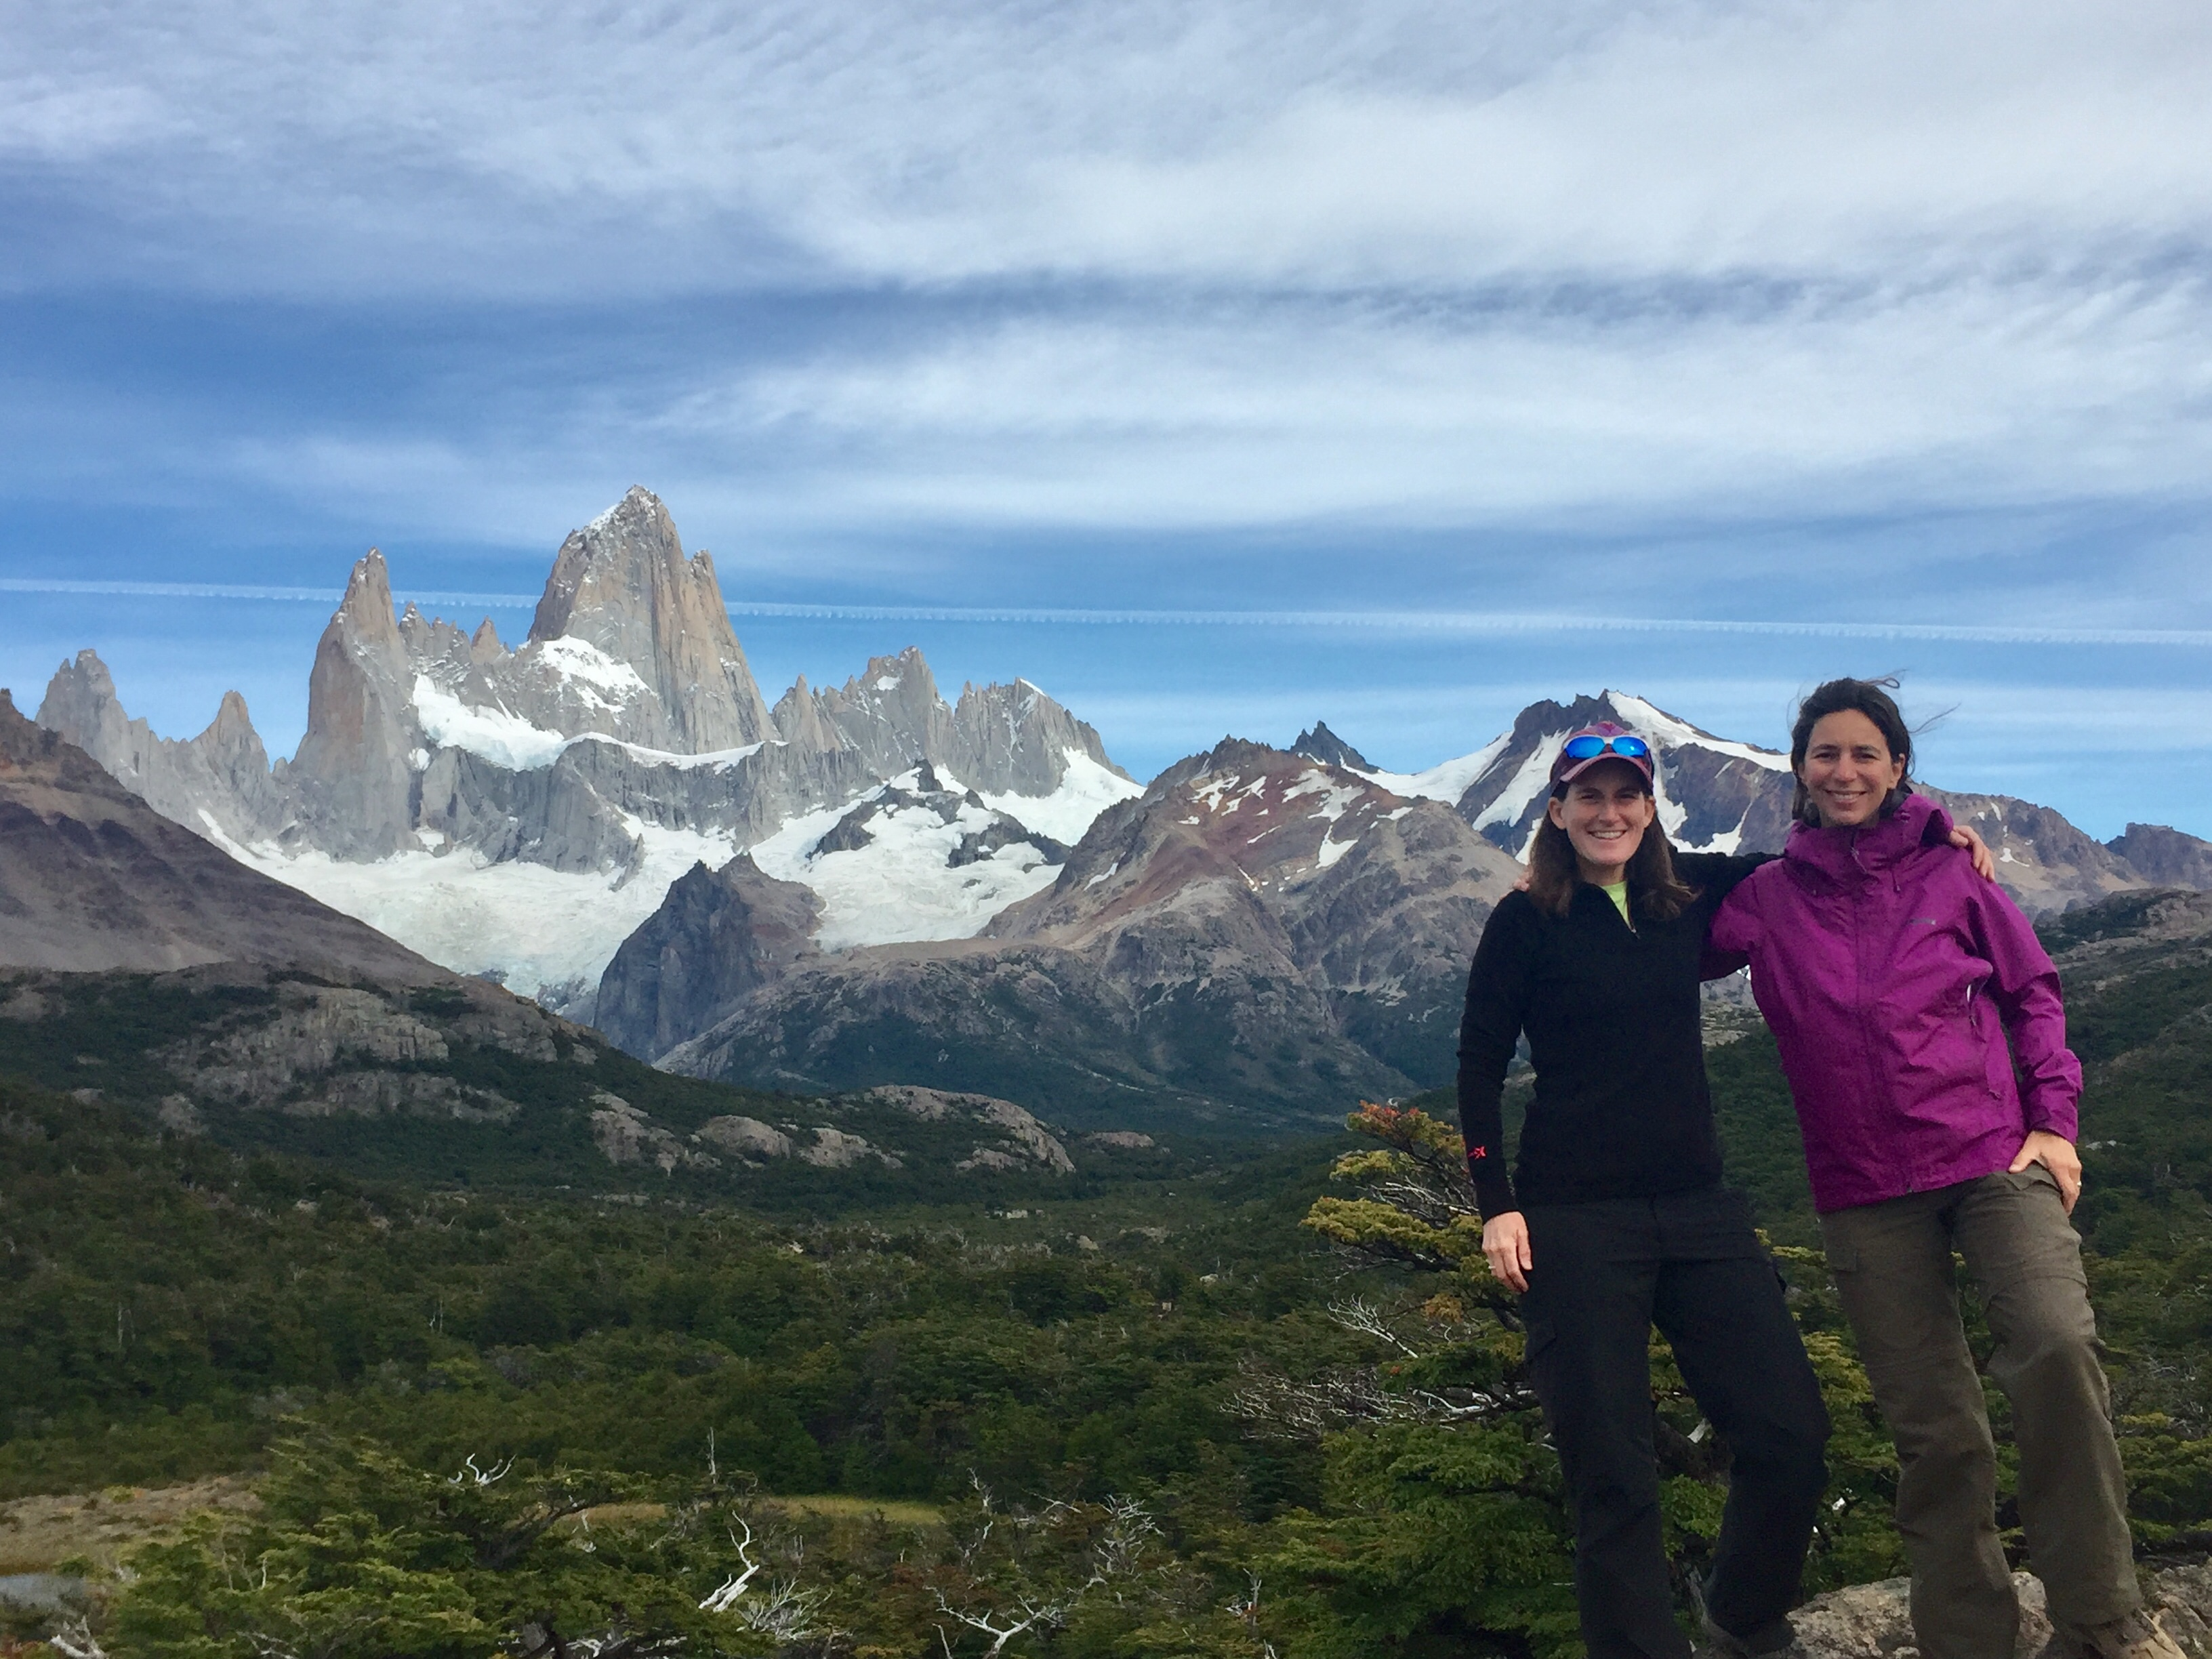 Maria with AGC guide Anne Brewer, in front of Mt. Fitz Roy in Fitz Roy Los Glaciares National Park